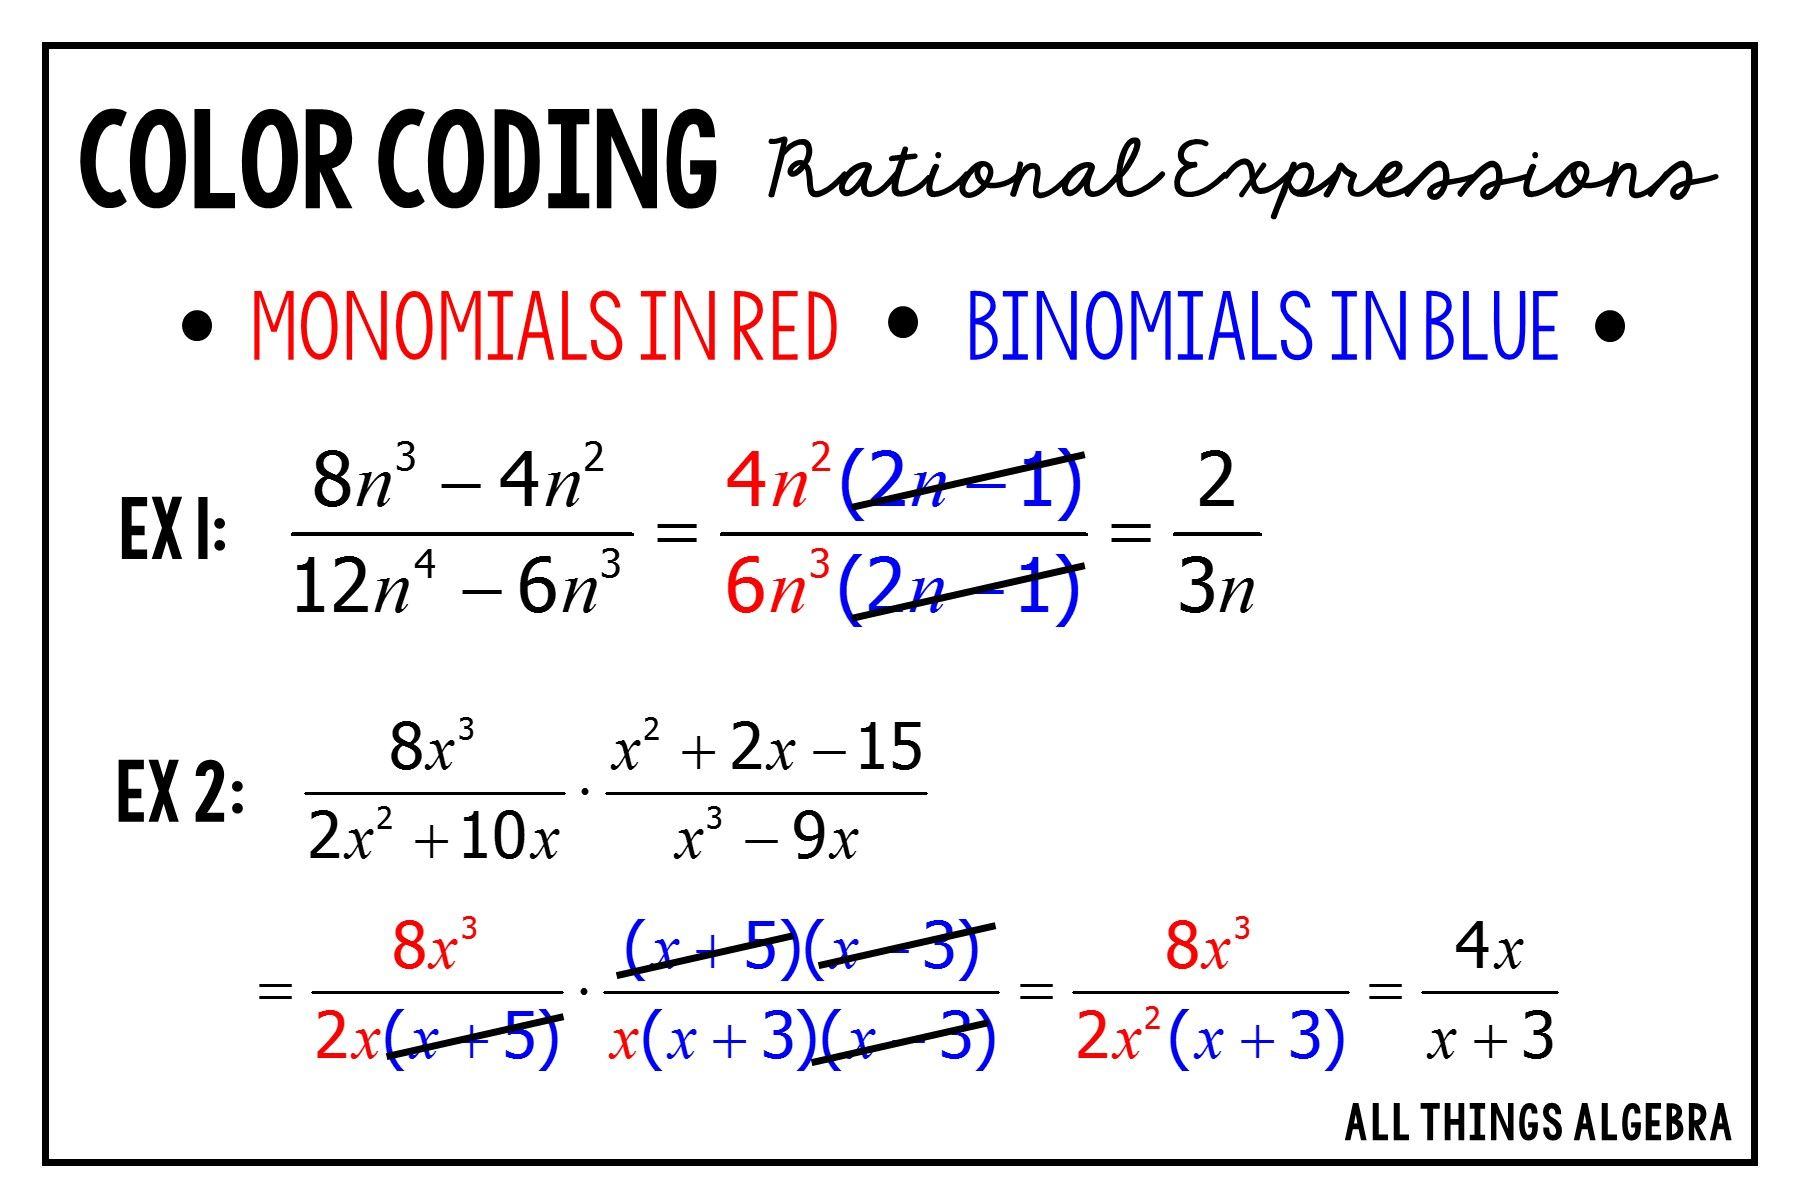 Color Coding with Rational Expressions | Rational ...